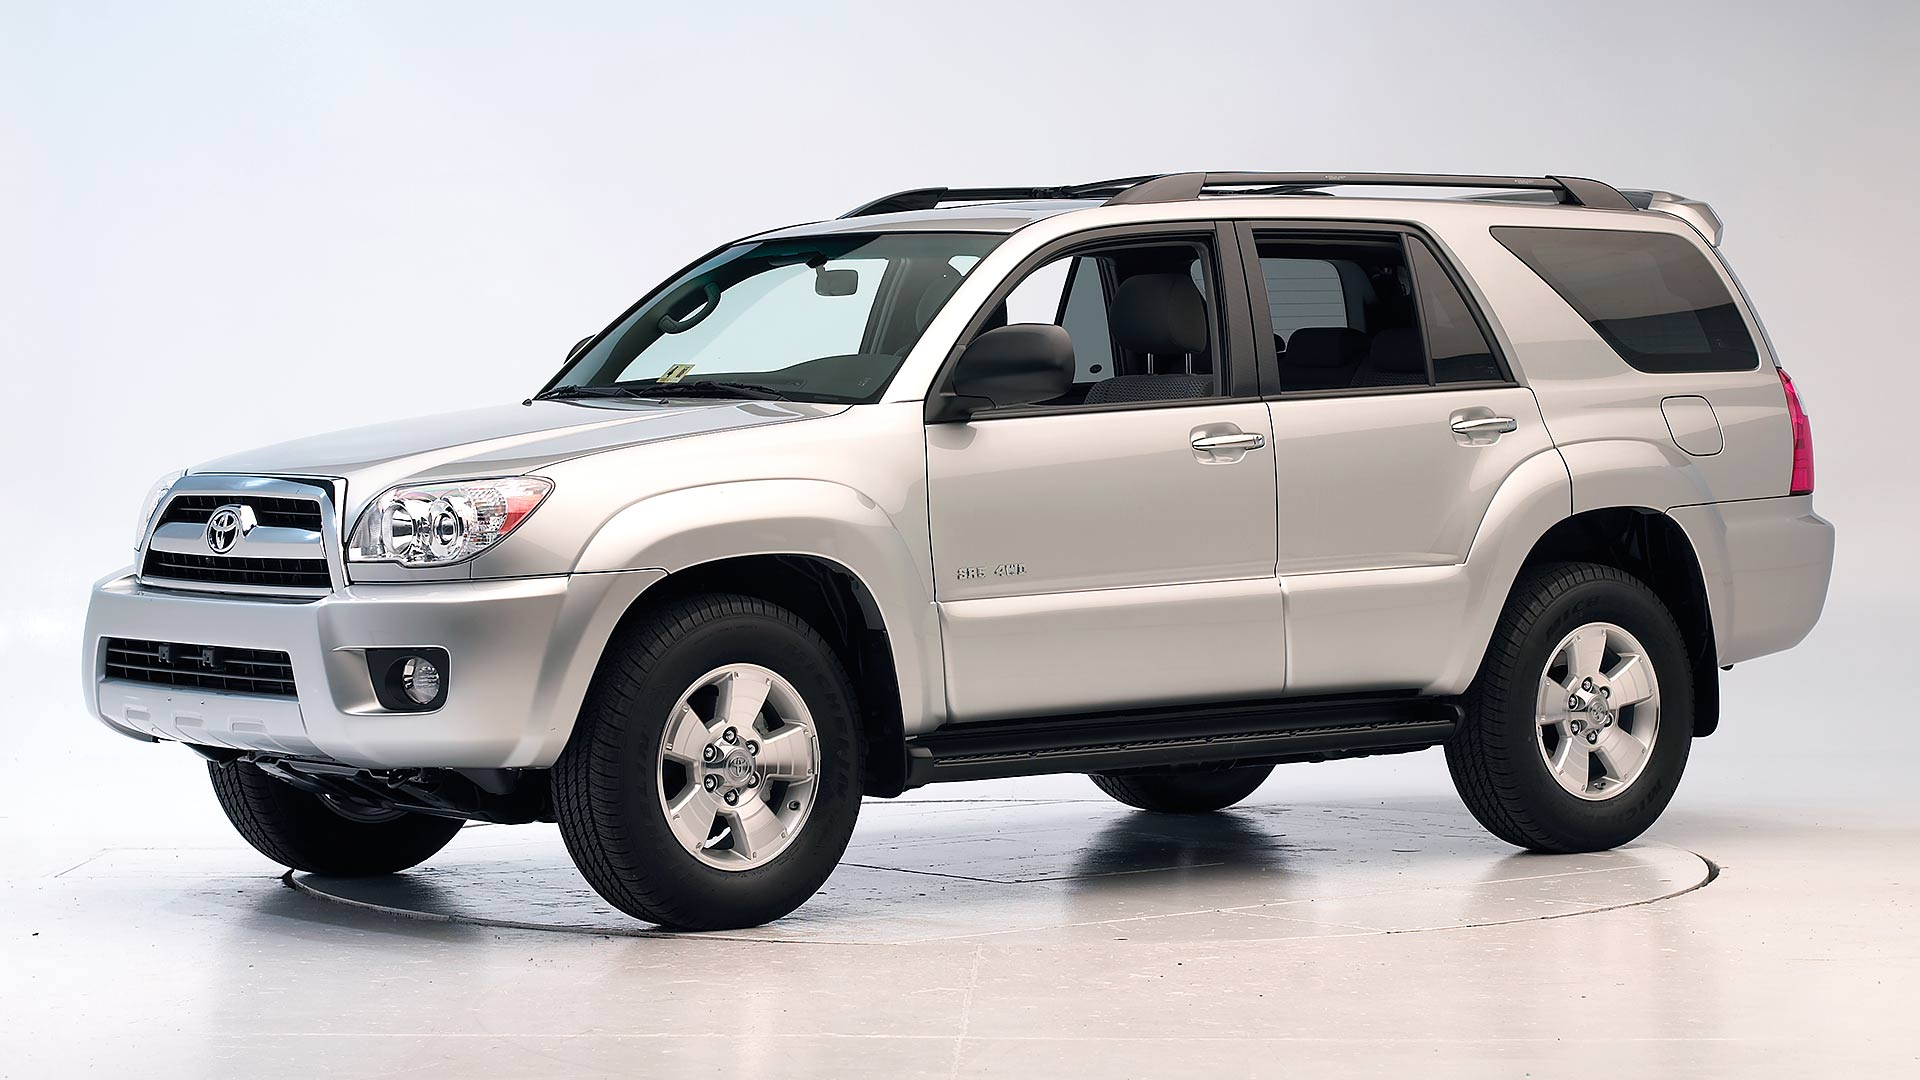 2007 Toyota 4Runner 4-door SUV